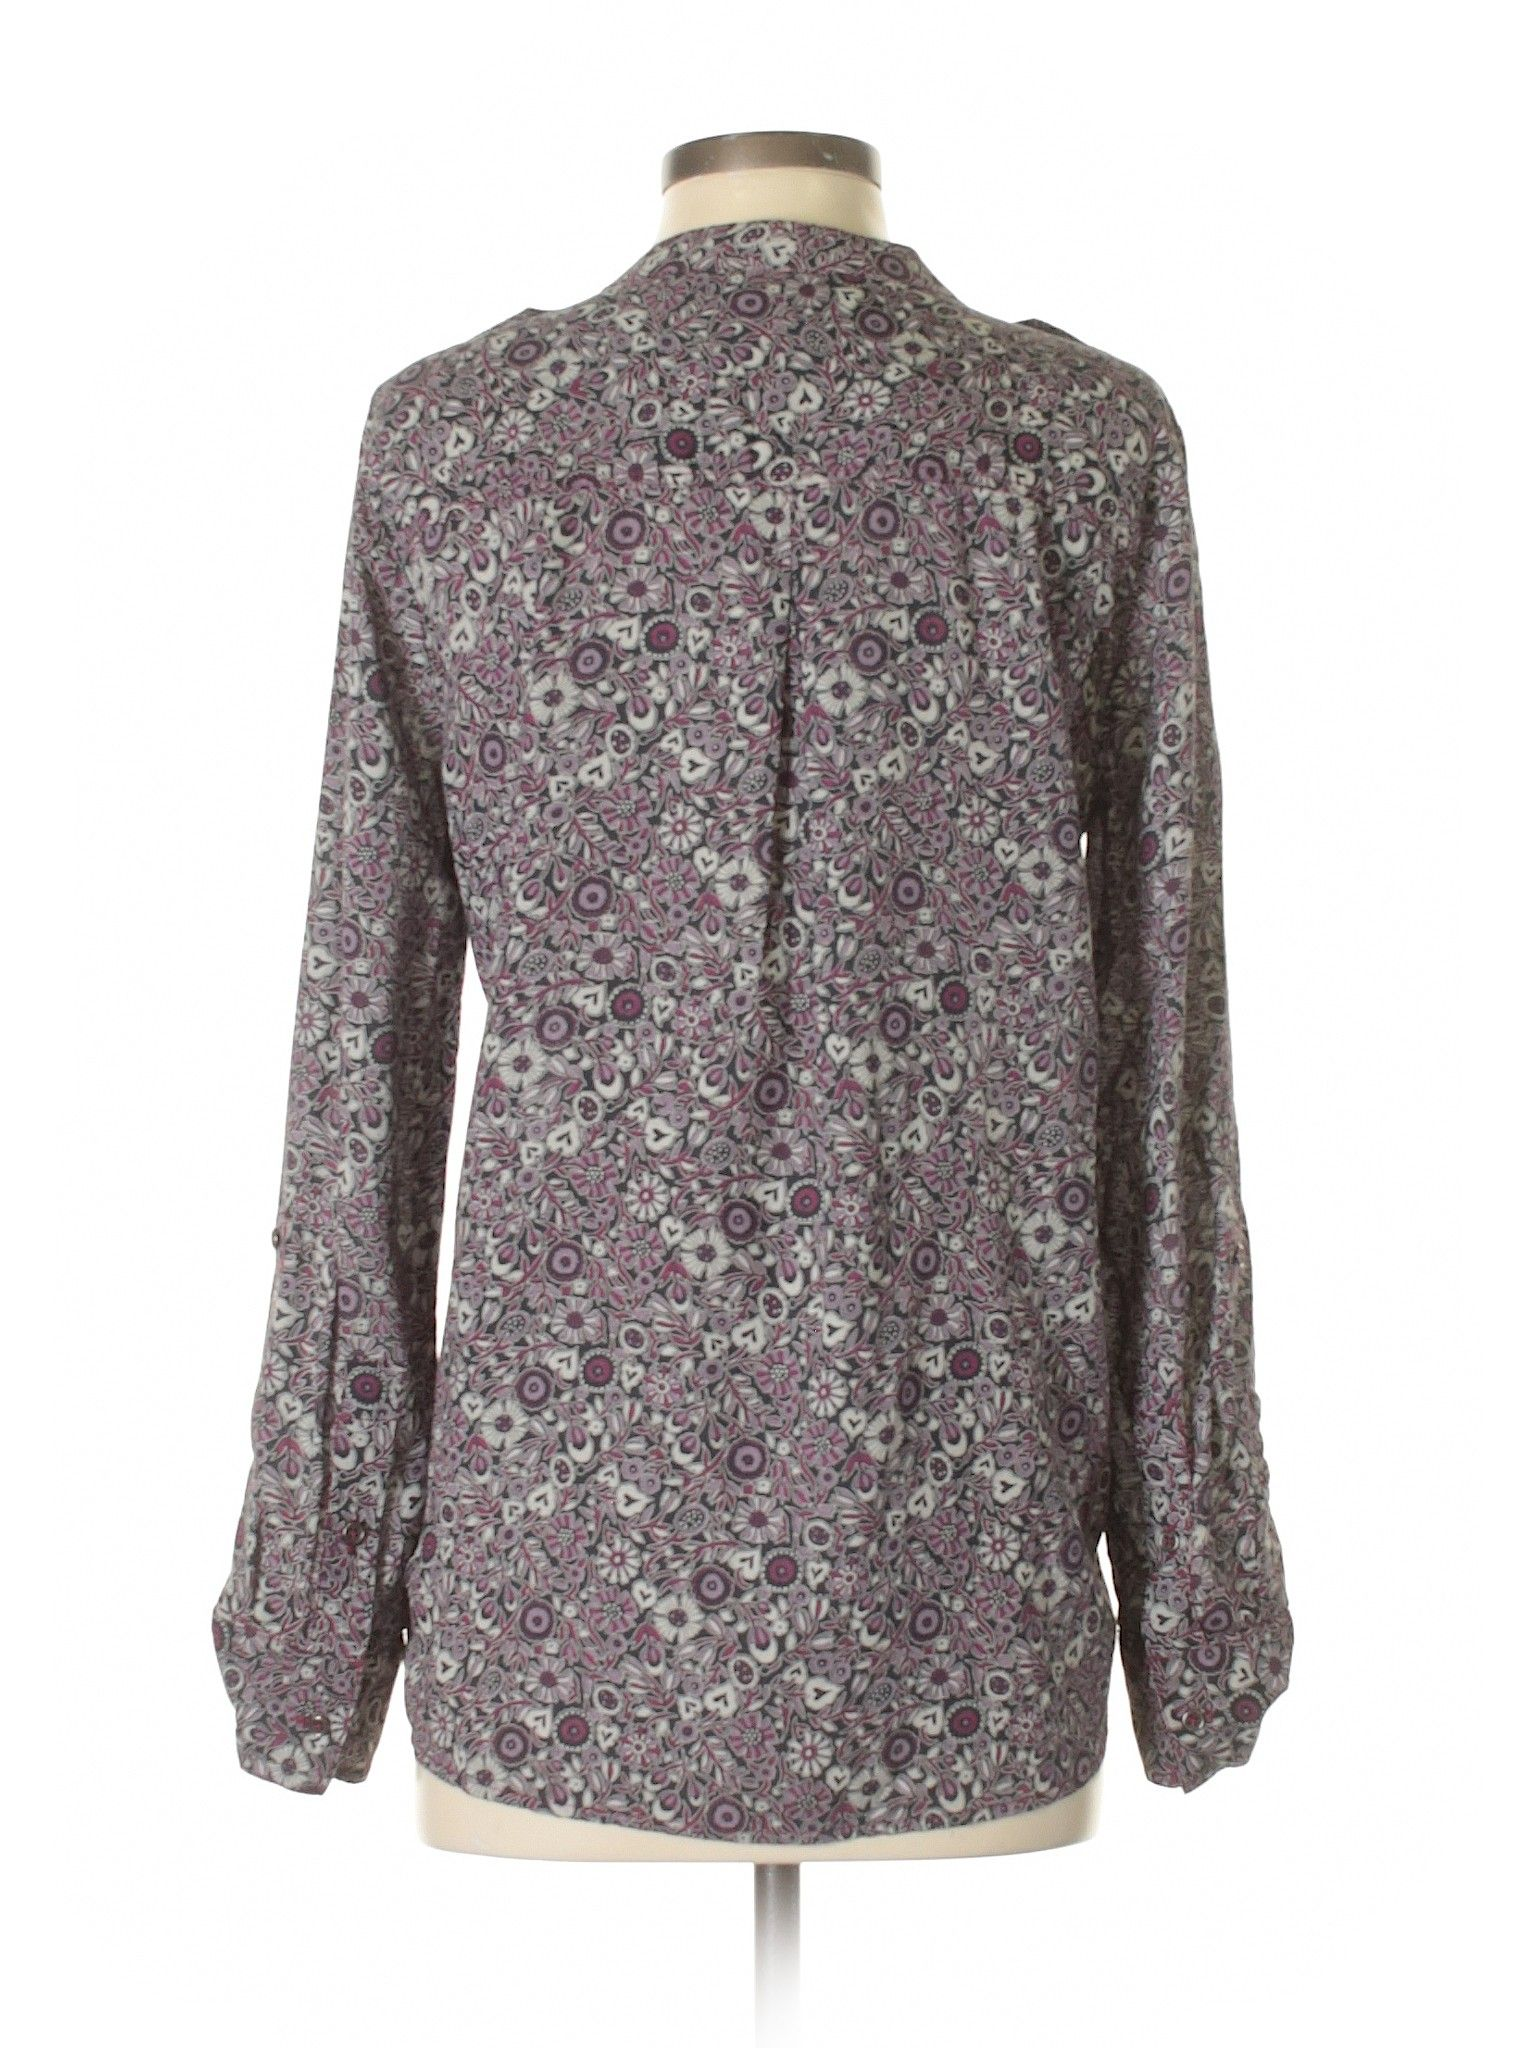 3384cd07dfb4 William Rast Long Sleeve Blouse: Size 4.00 Purple Women's Tops - New With  Tags - $12.99